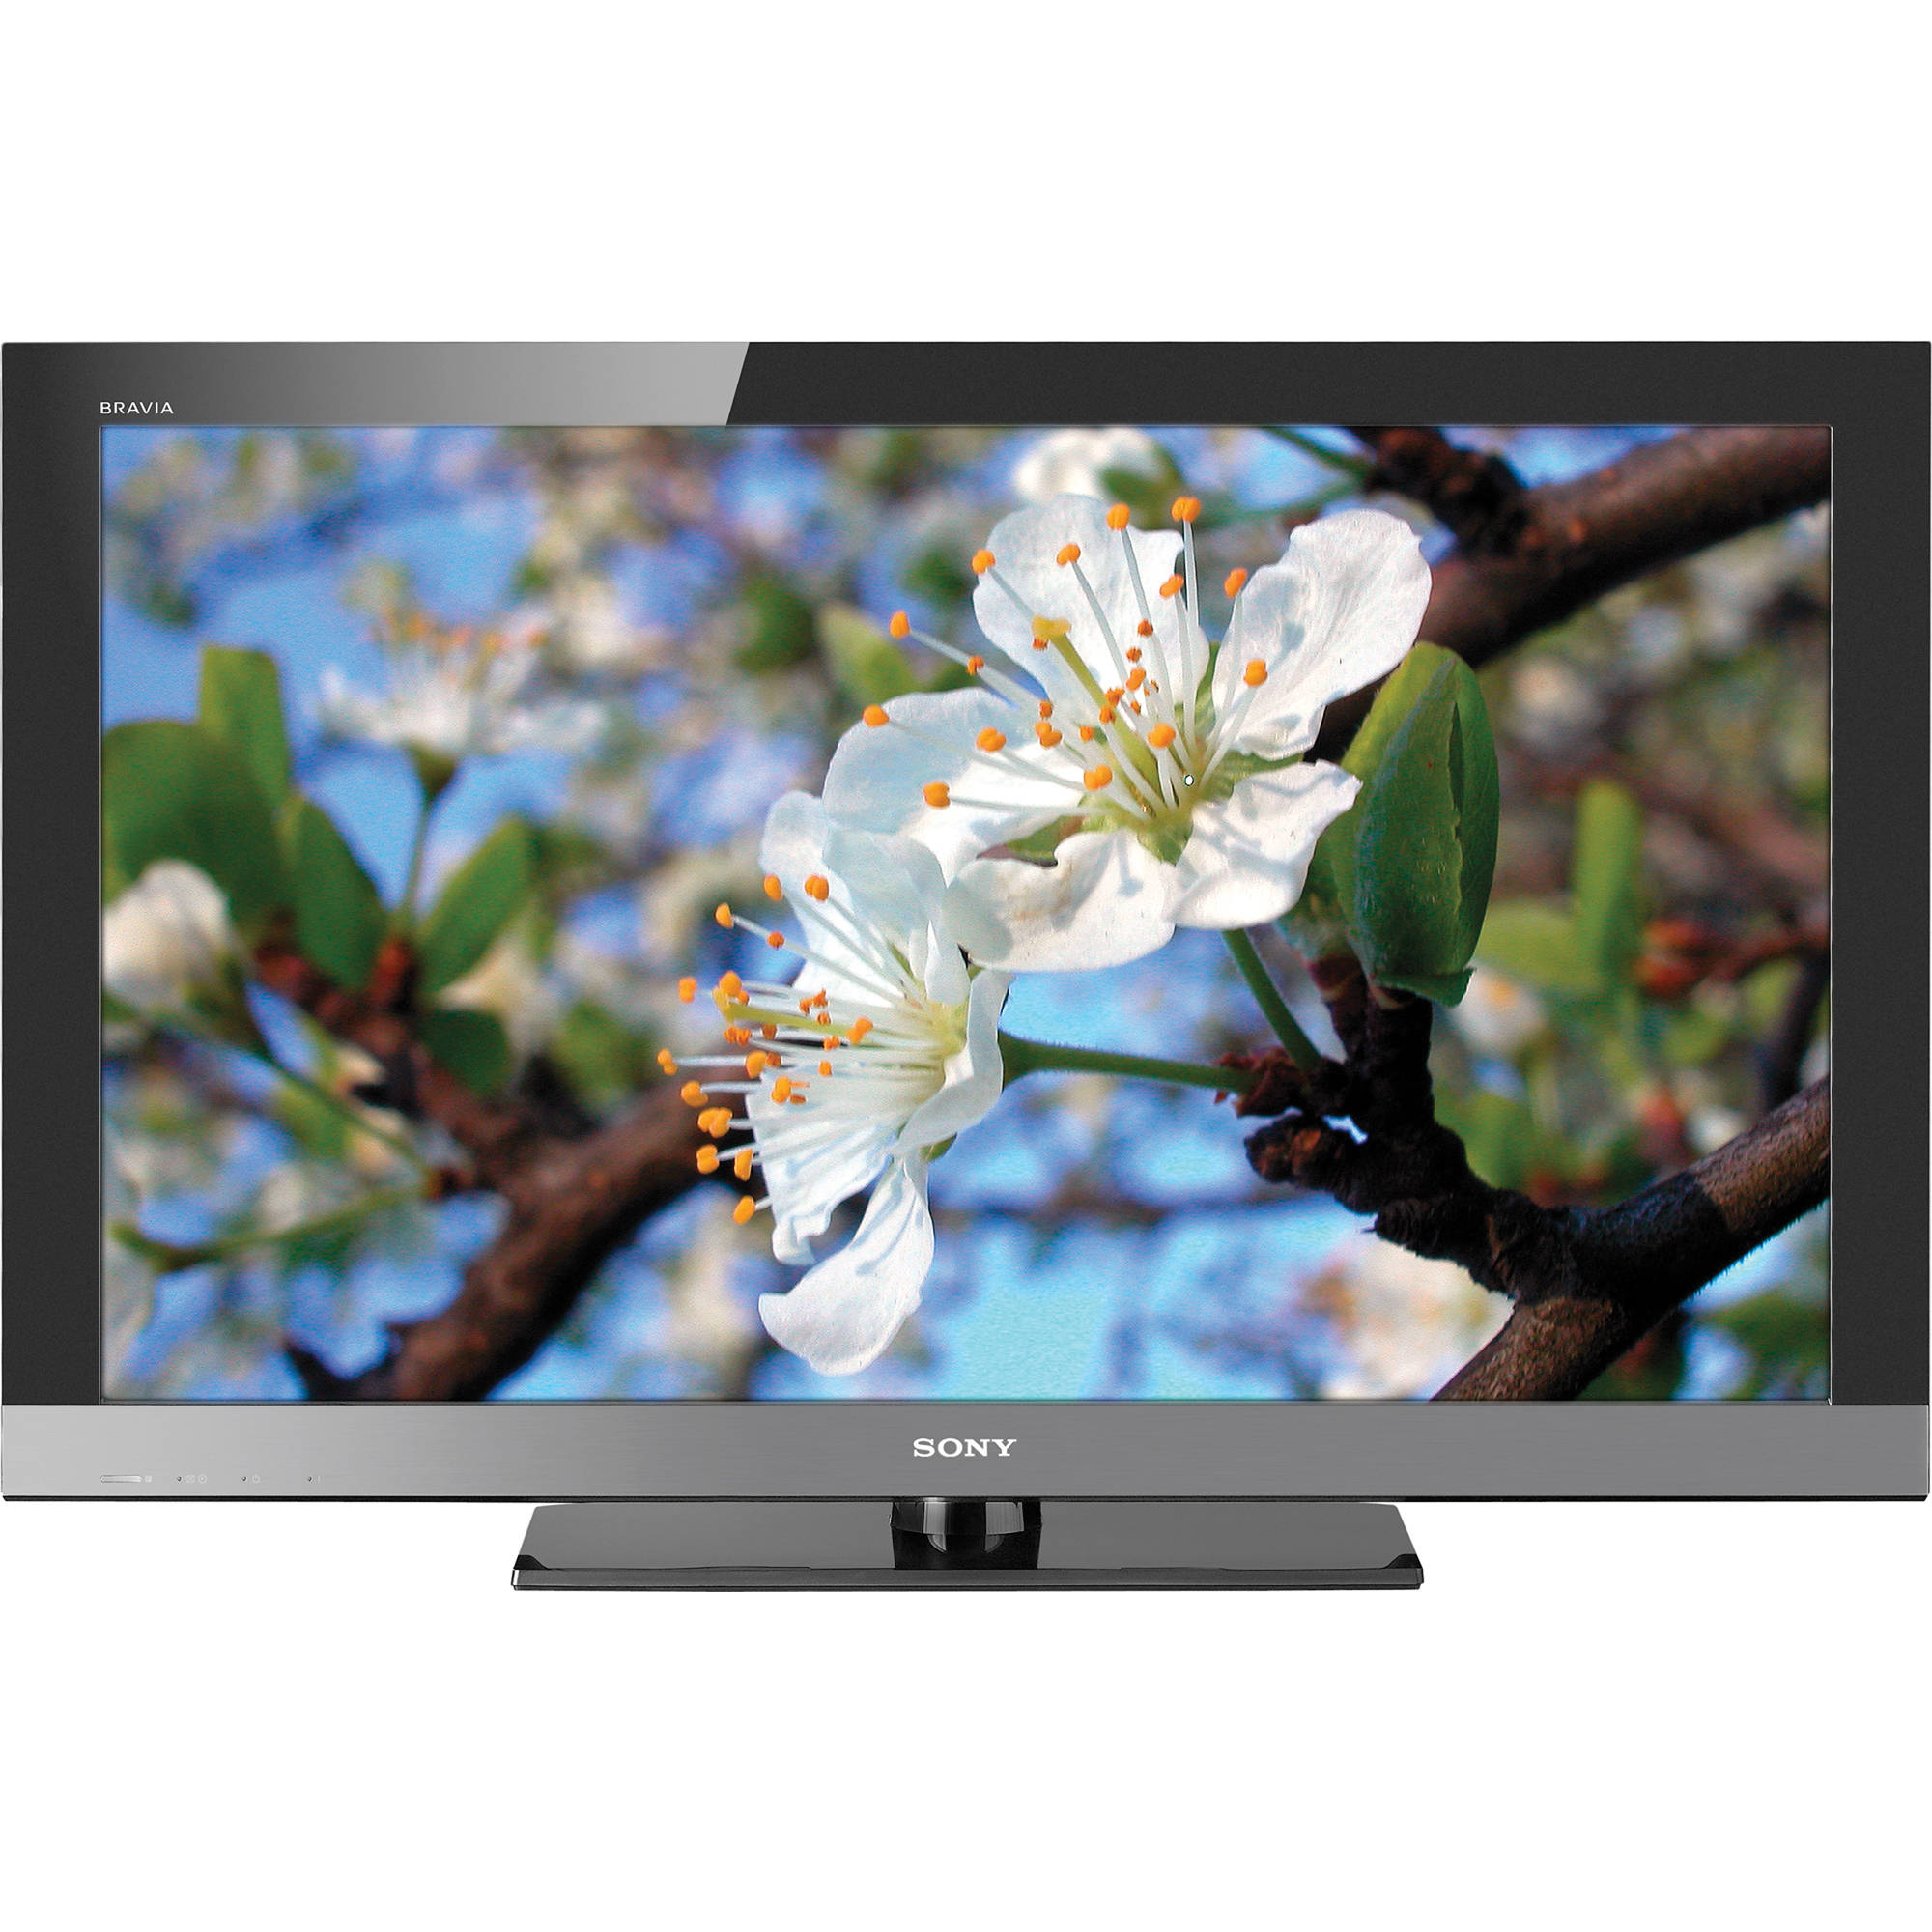 SONY KDL-46EX500 BRAVIA HDTV WINDOWS 8 X64 DRIVER DOWNLOAD